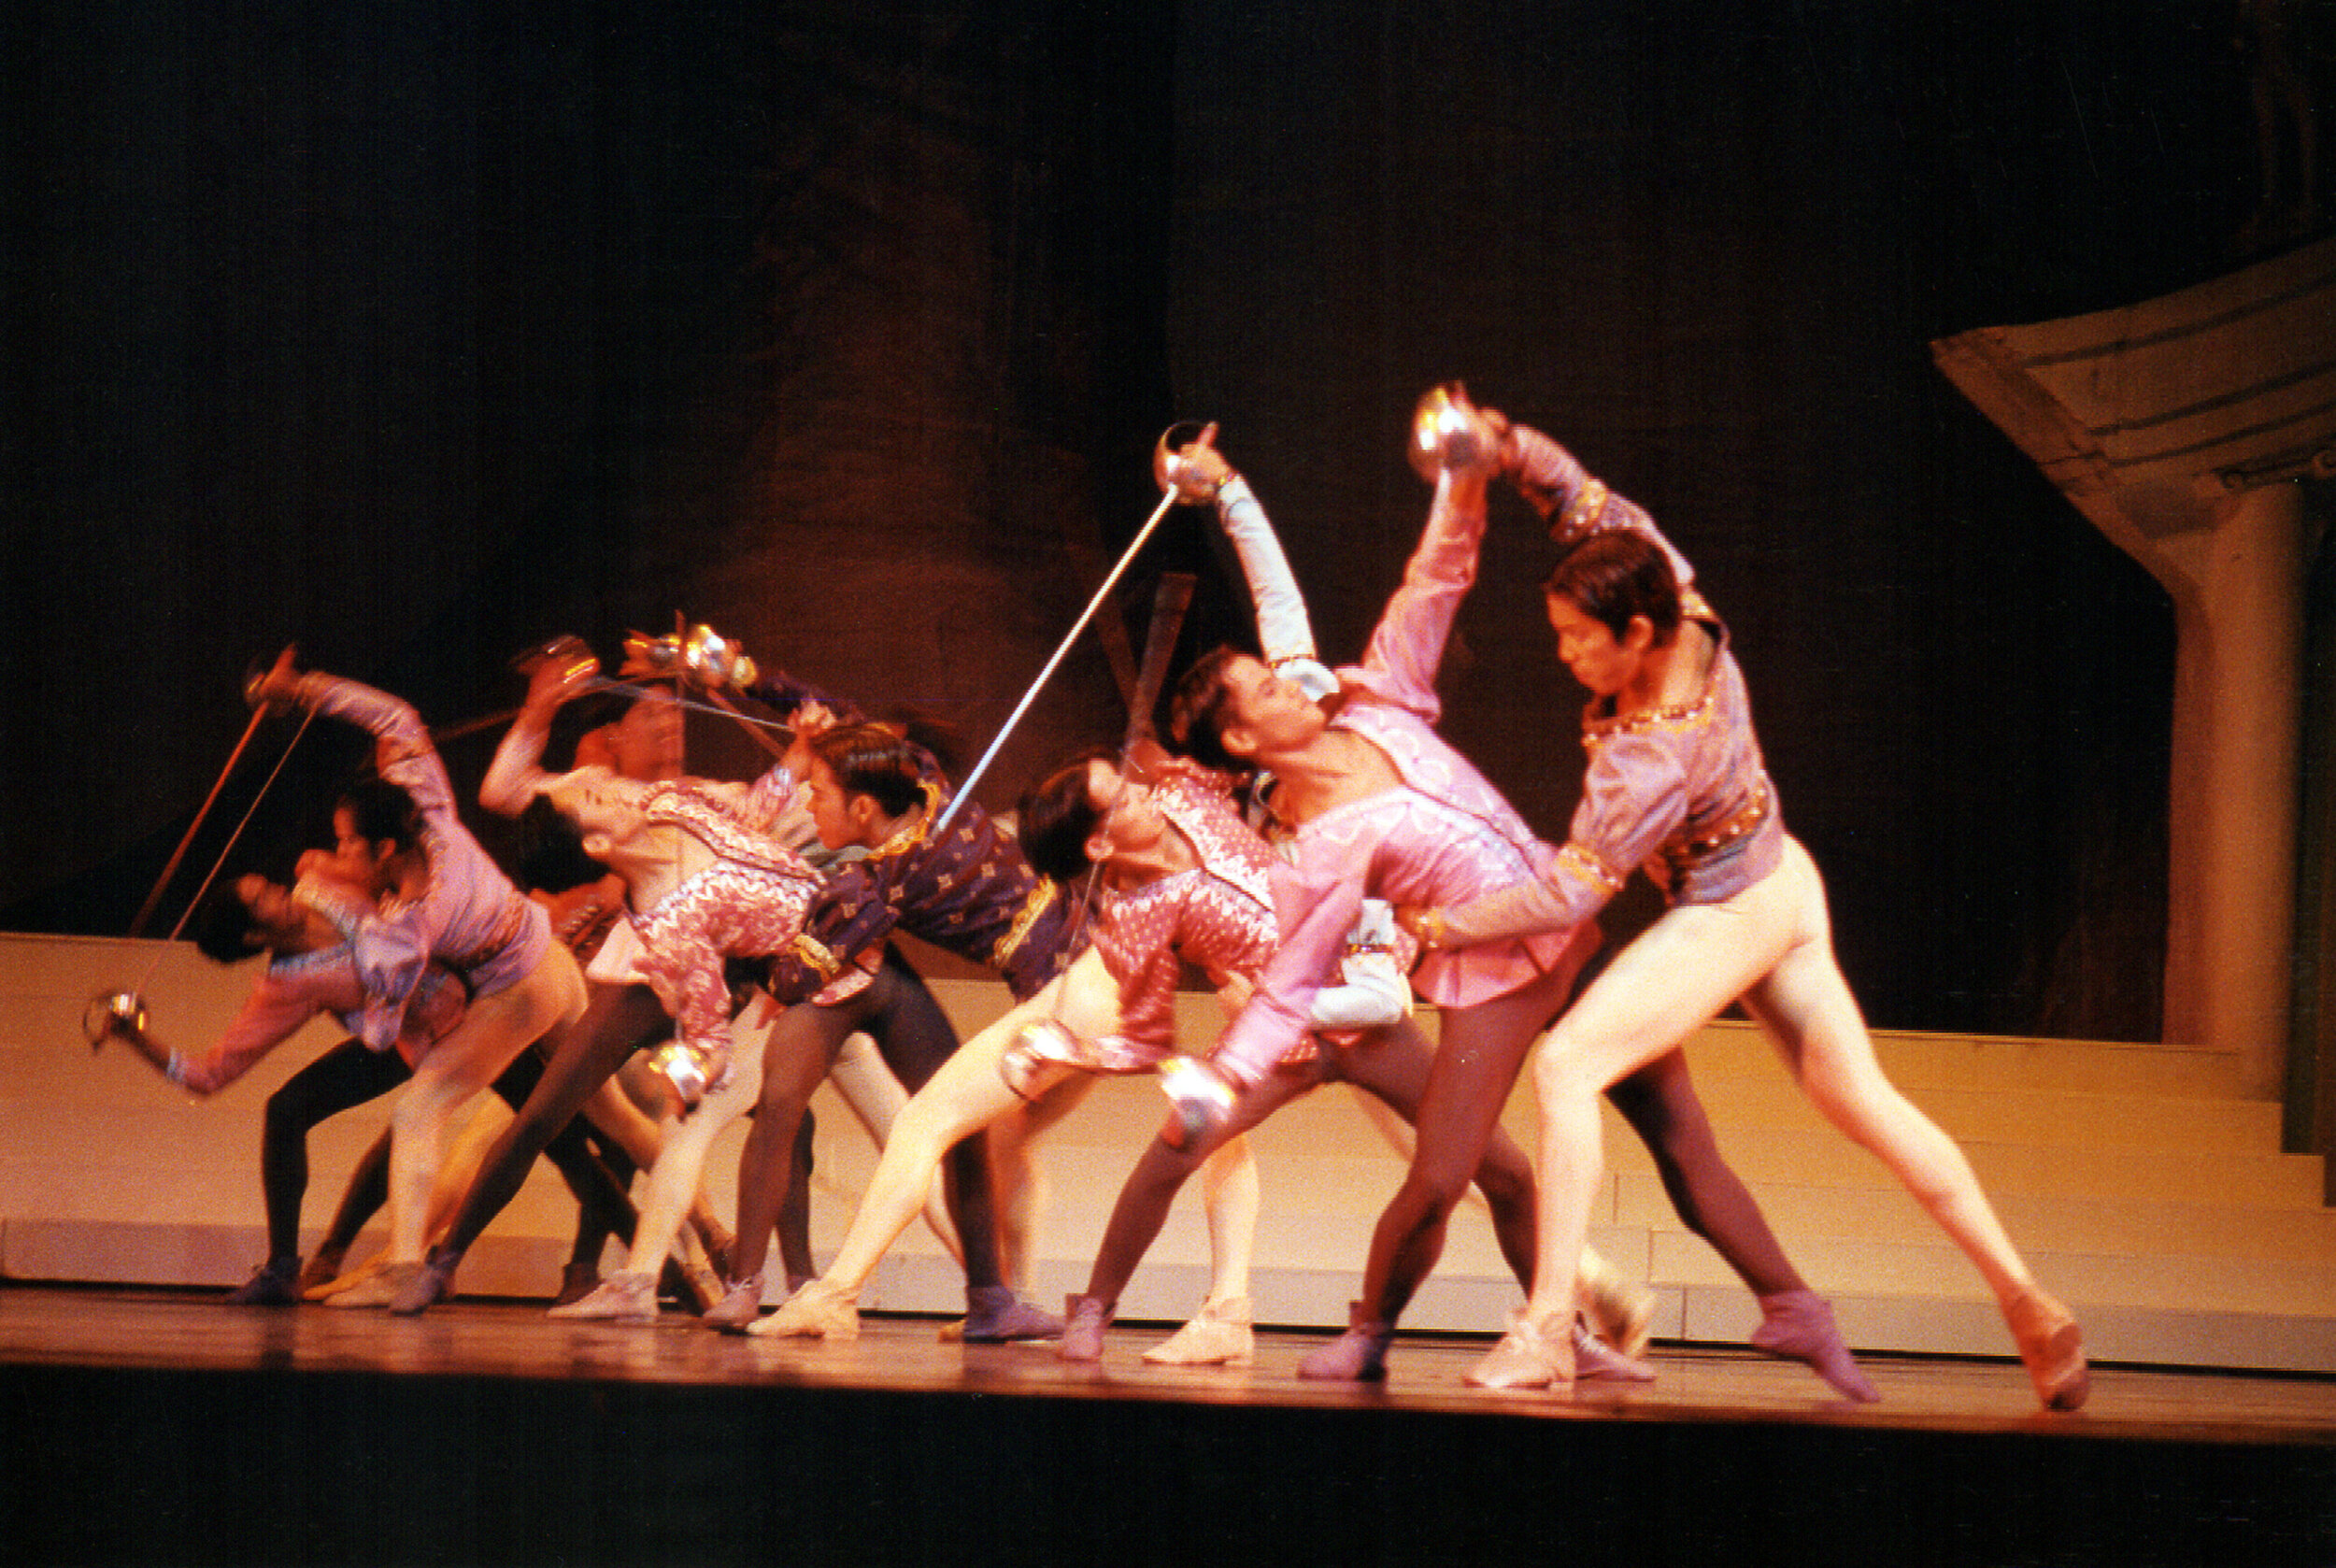 An action-packed scene in  Romeo and Juliet , staged at the Cultural Center of the Philippines. Photo by Ocs Alvarez from the Ballet Manila Archives collection